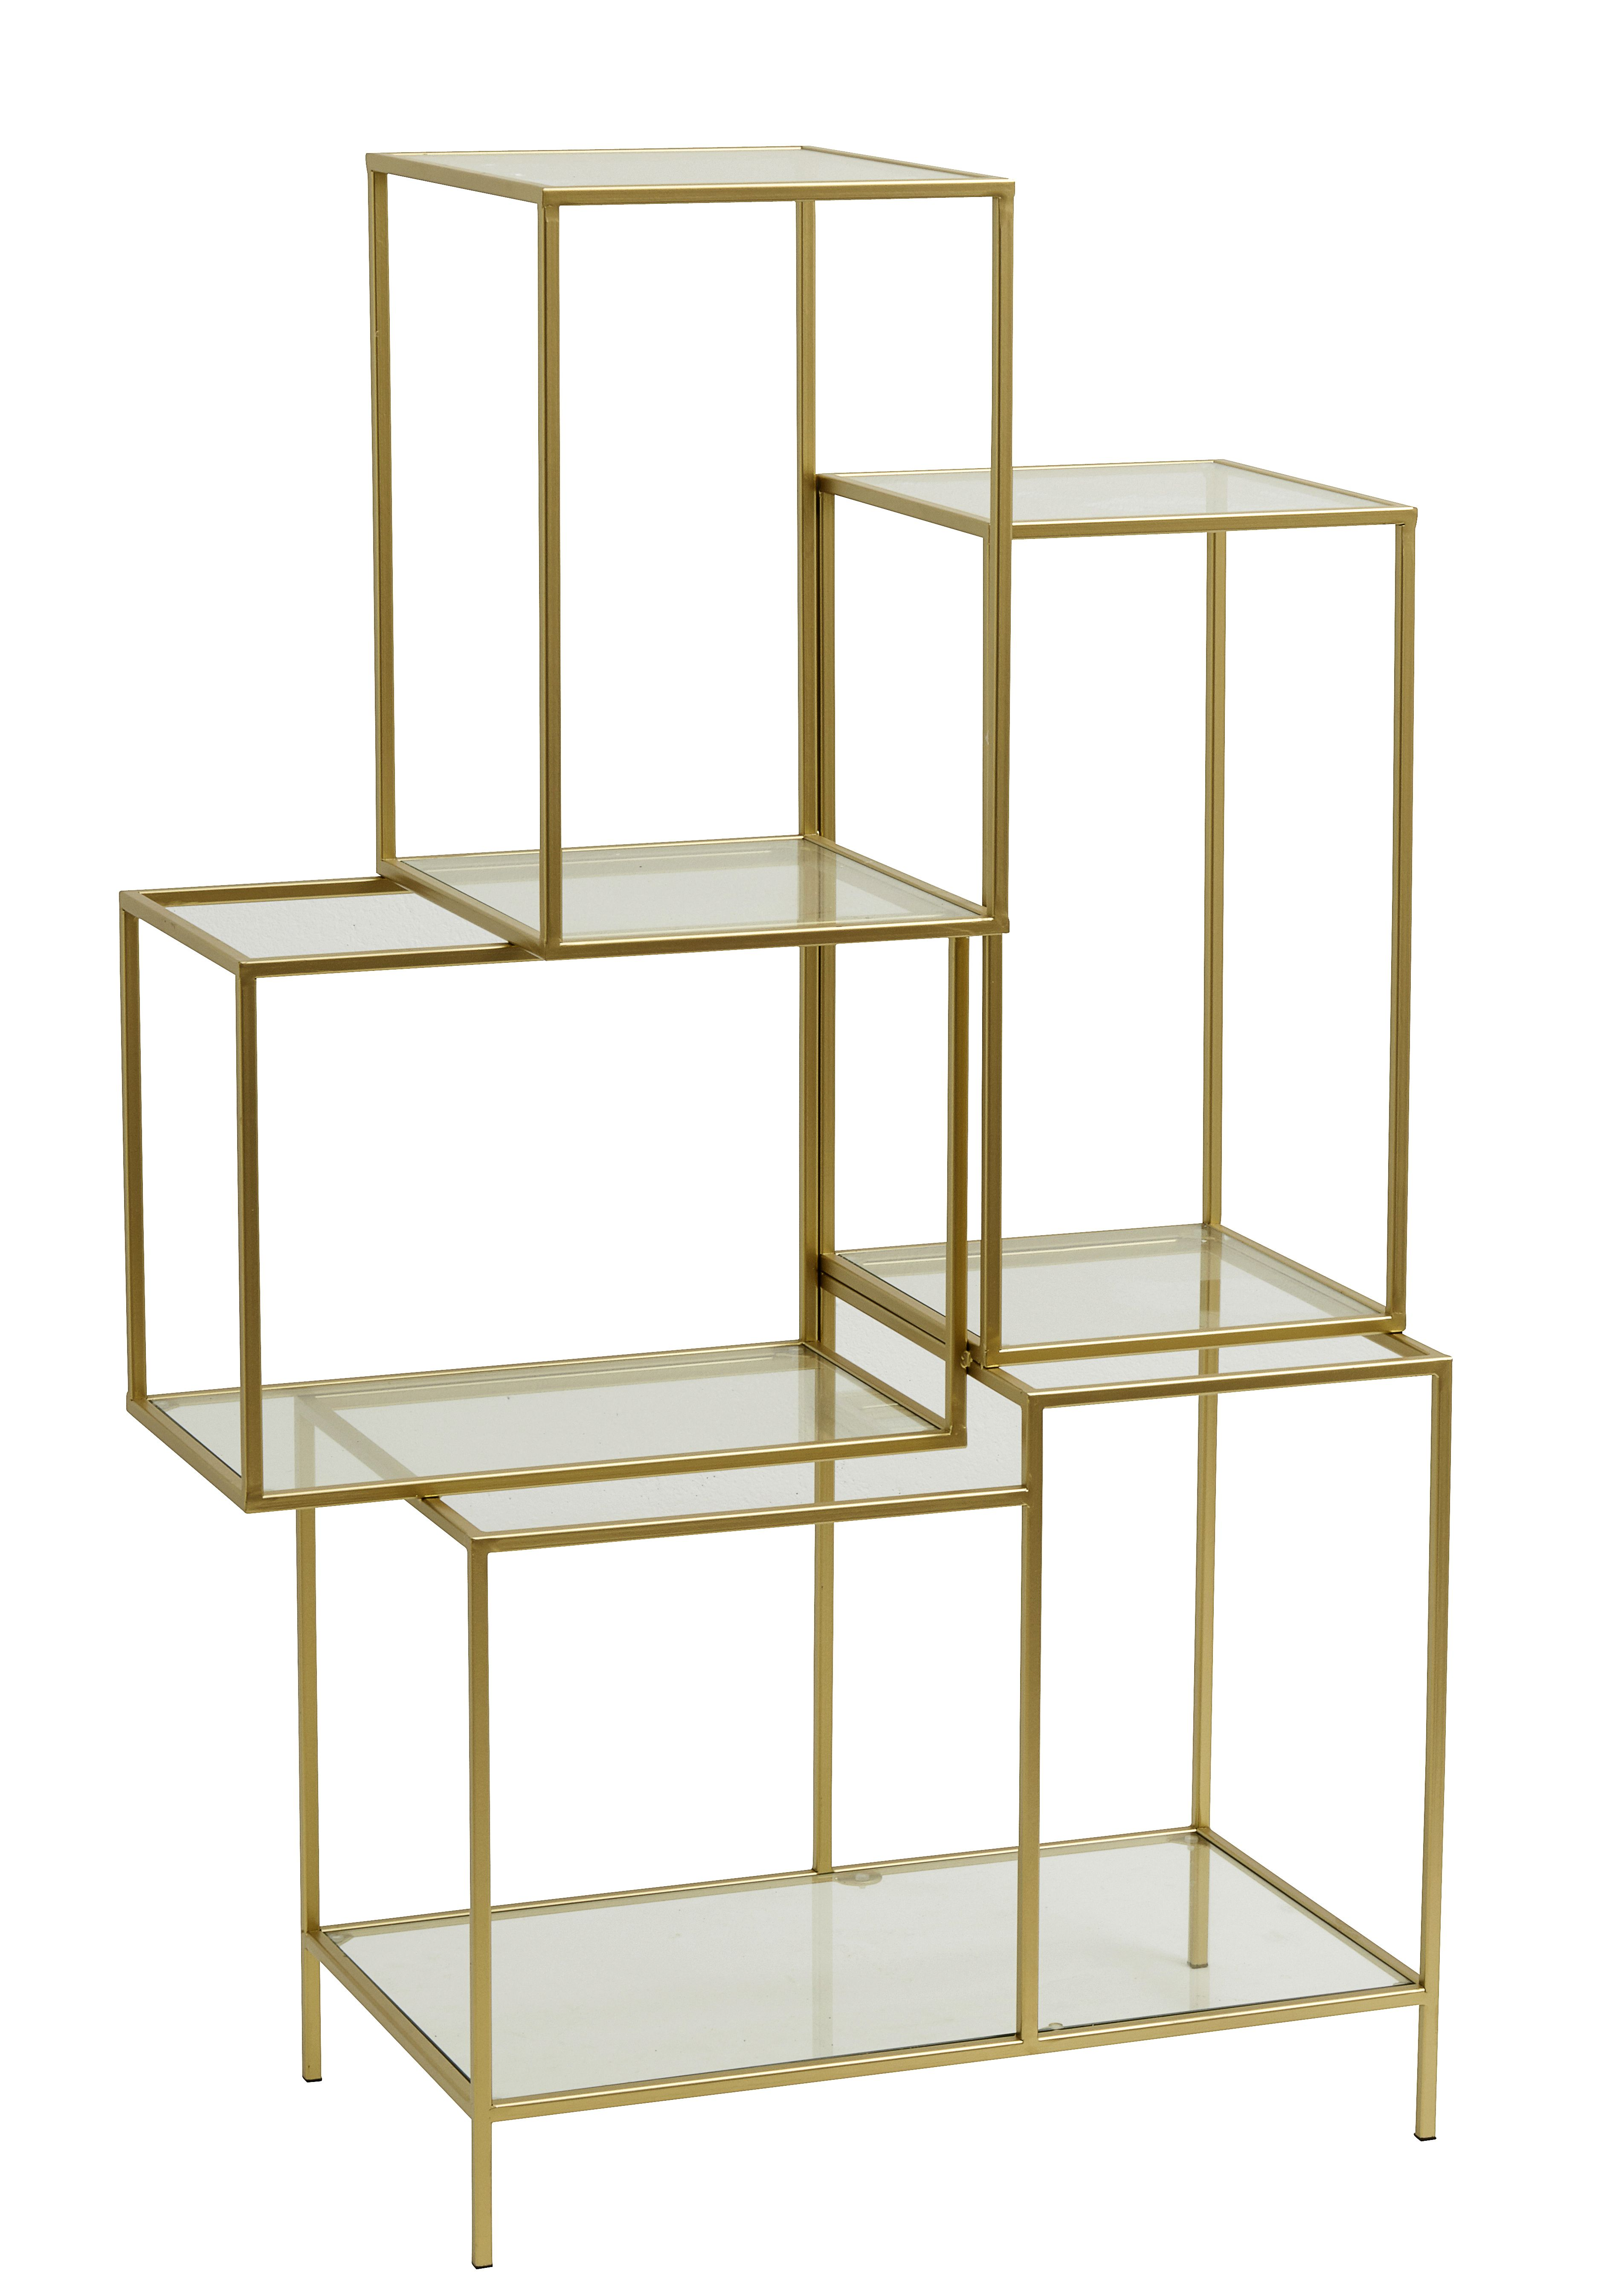 Rack with glass shelves, metal, gold | Cyril \'s family | Pinterest ...